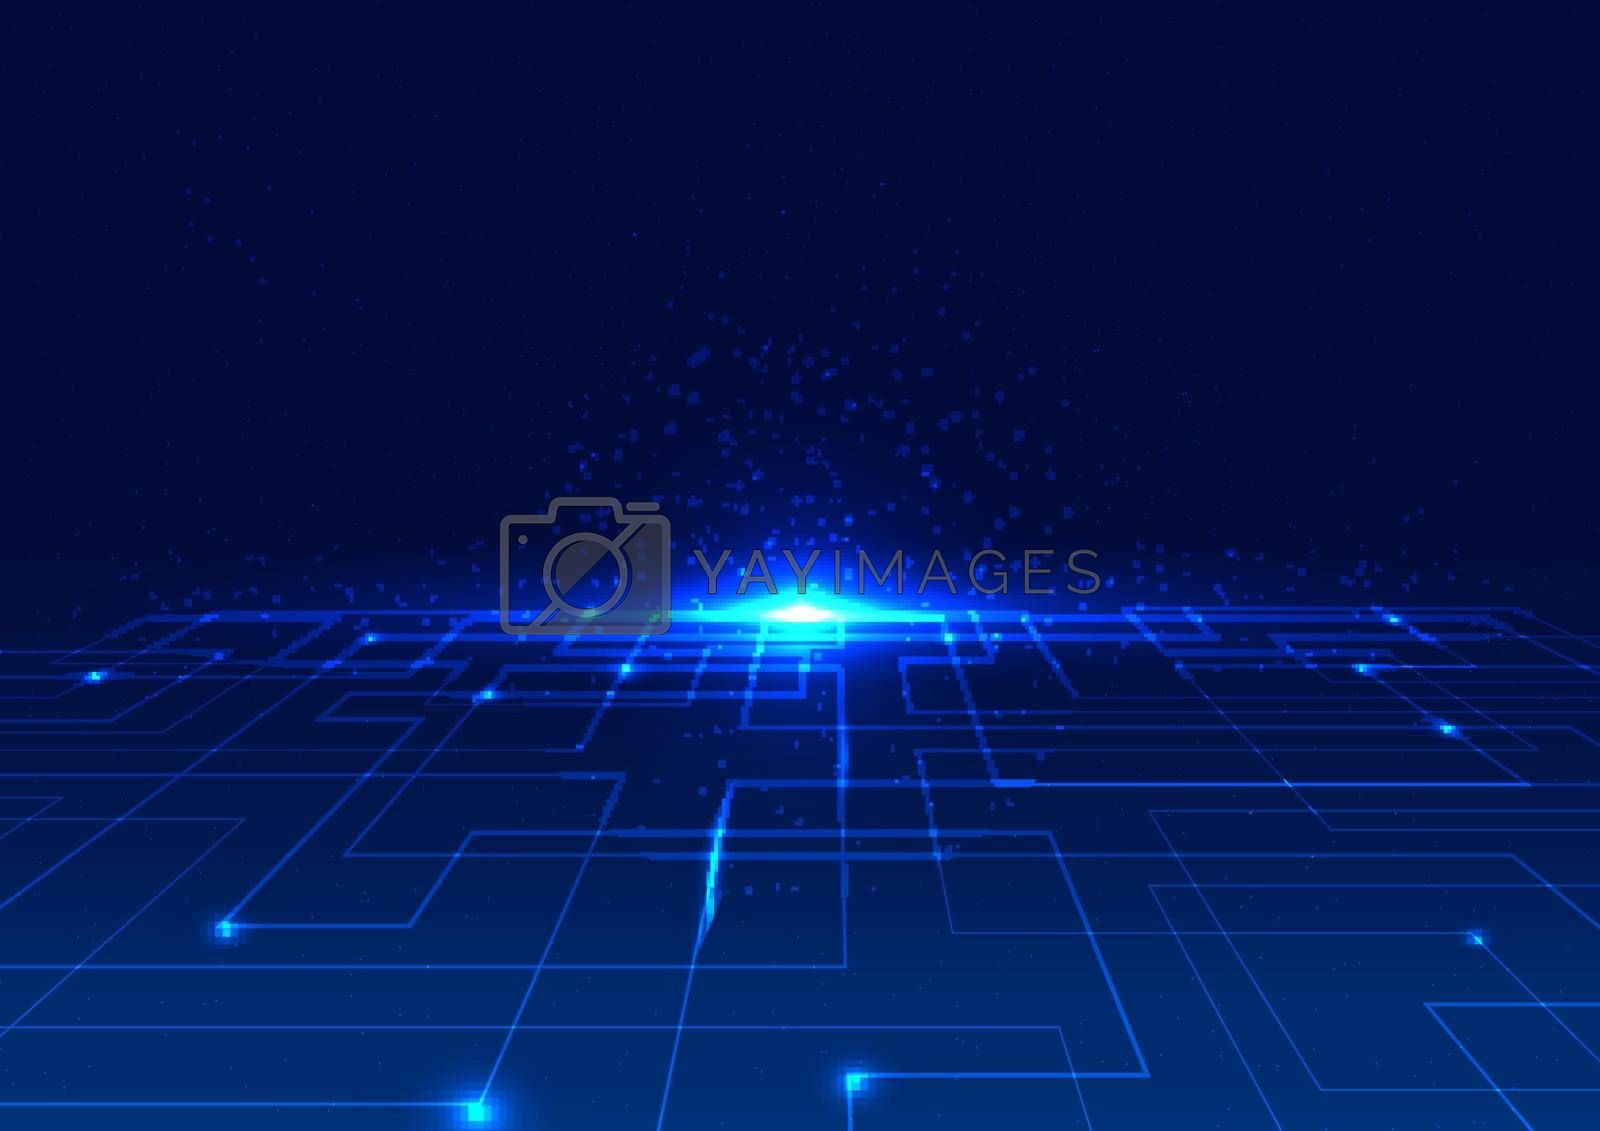 Abstract technology digital concept blue line perspective with glow light on dark background. Vector illustration